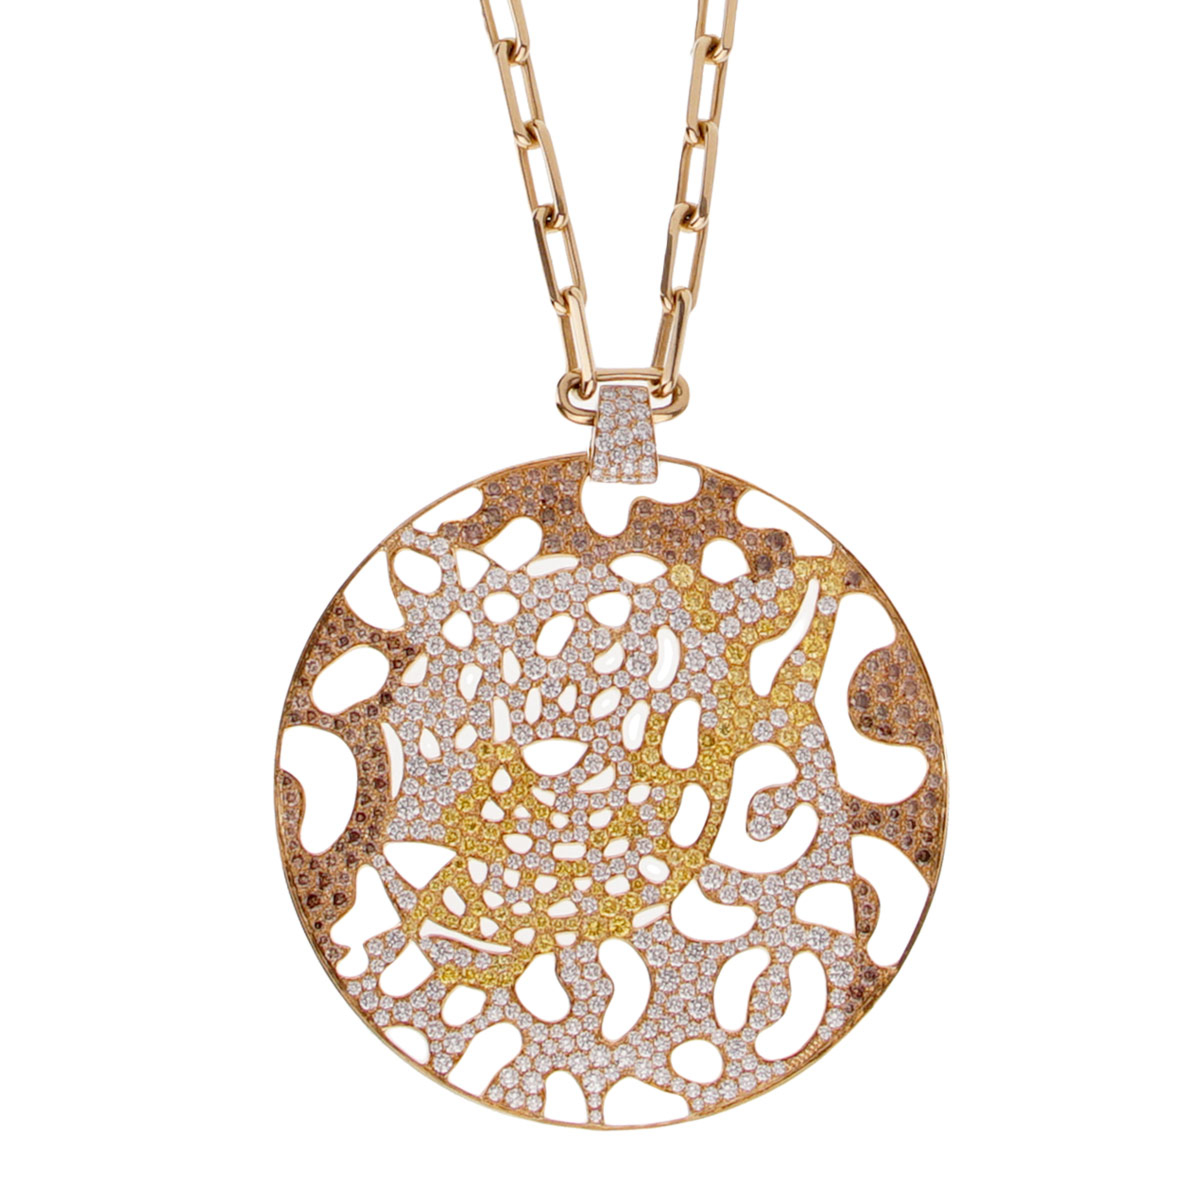 Cartier Panthere Openwork Limited Edition Gold Necklace - Cartier Jewelry